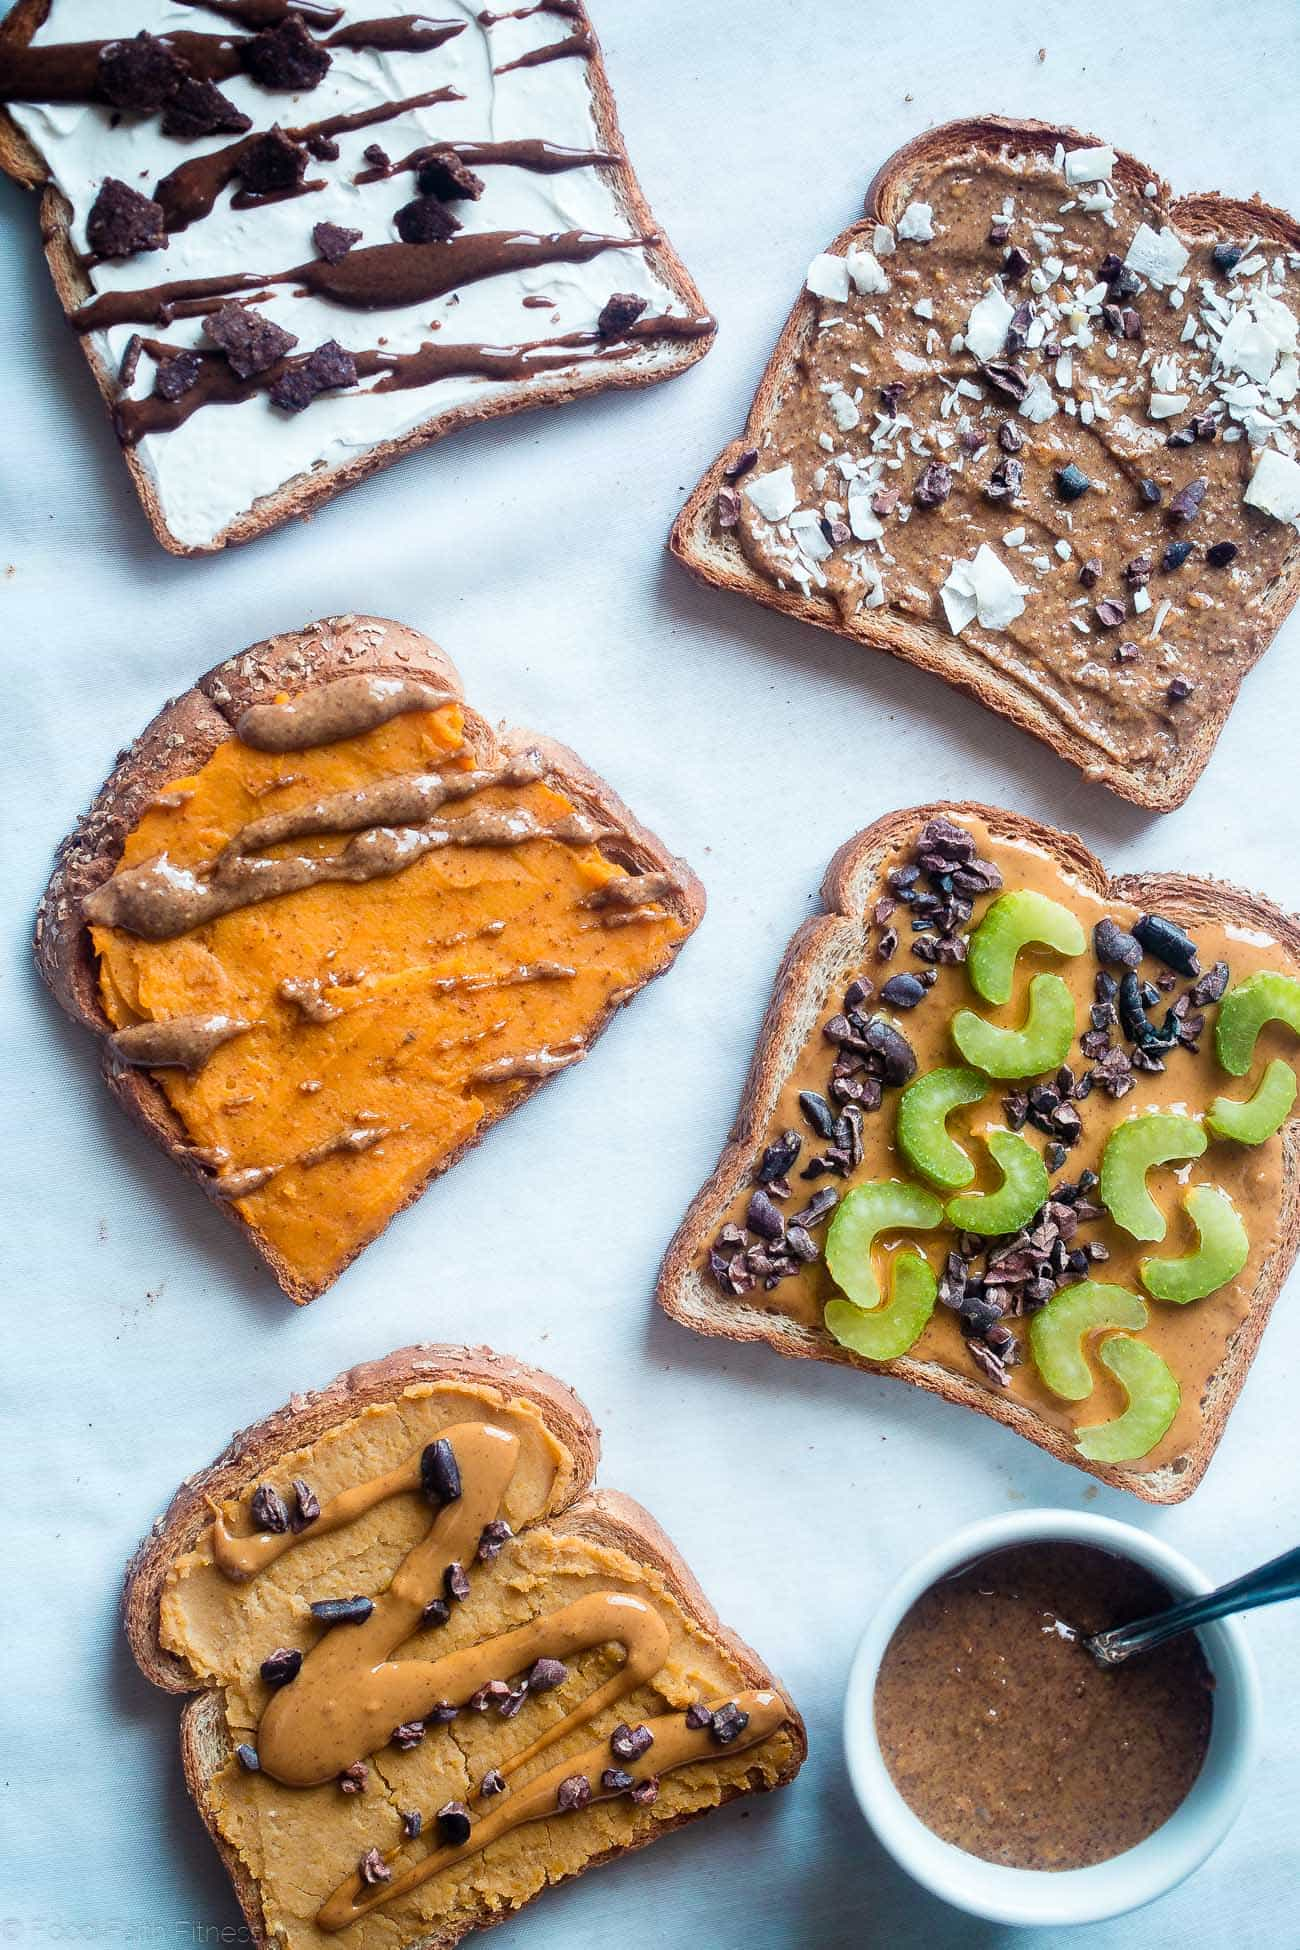 5 Vegan Dessert Breakfast Toasts - Want to eat cookie dough, cookies n' cream, sweet potato pie or an almond joy for breakfast? These healthy, gluten free toasts let you have dessert for breakfast, and you can prep the toppings ahead! | FoodFaithFitness.com | @FoodFaithFit